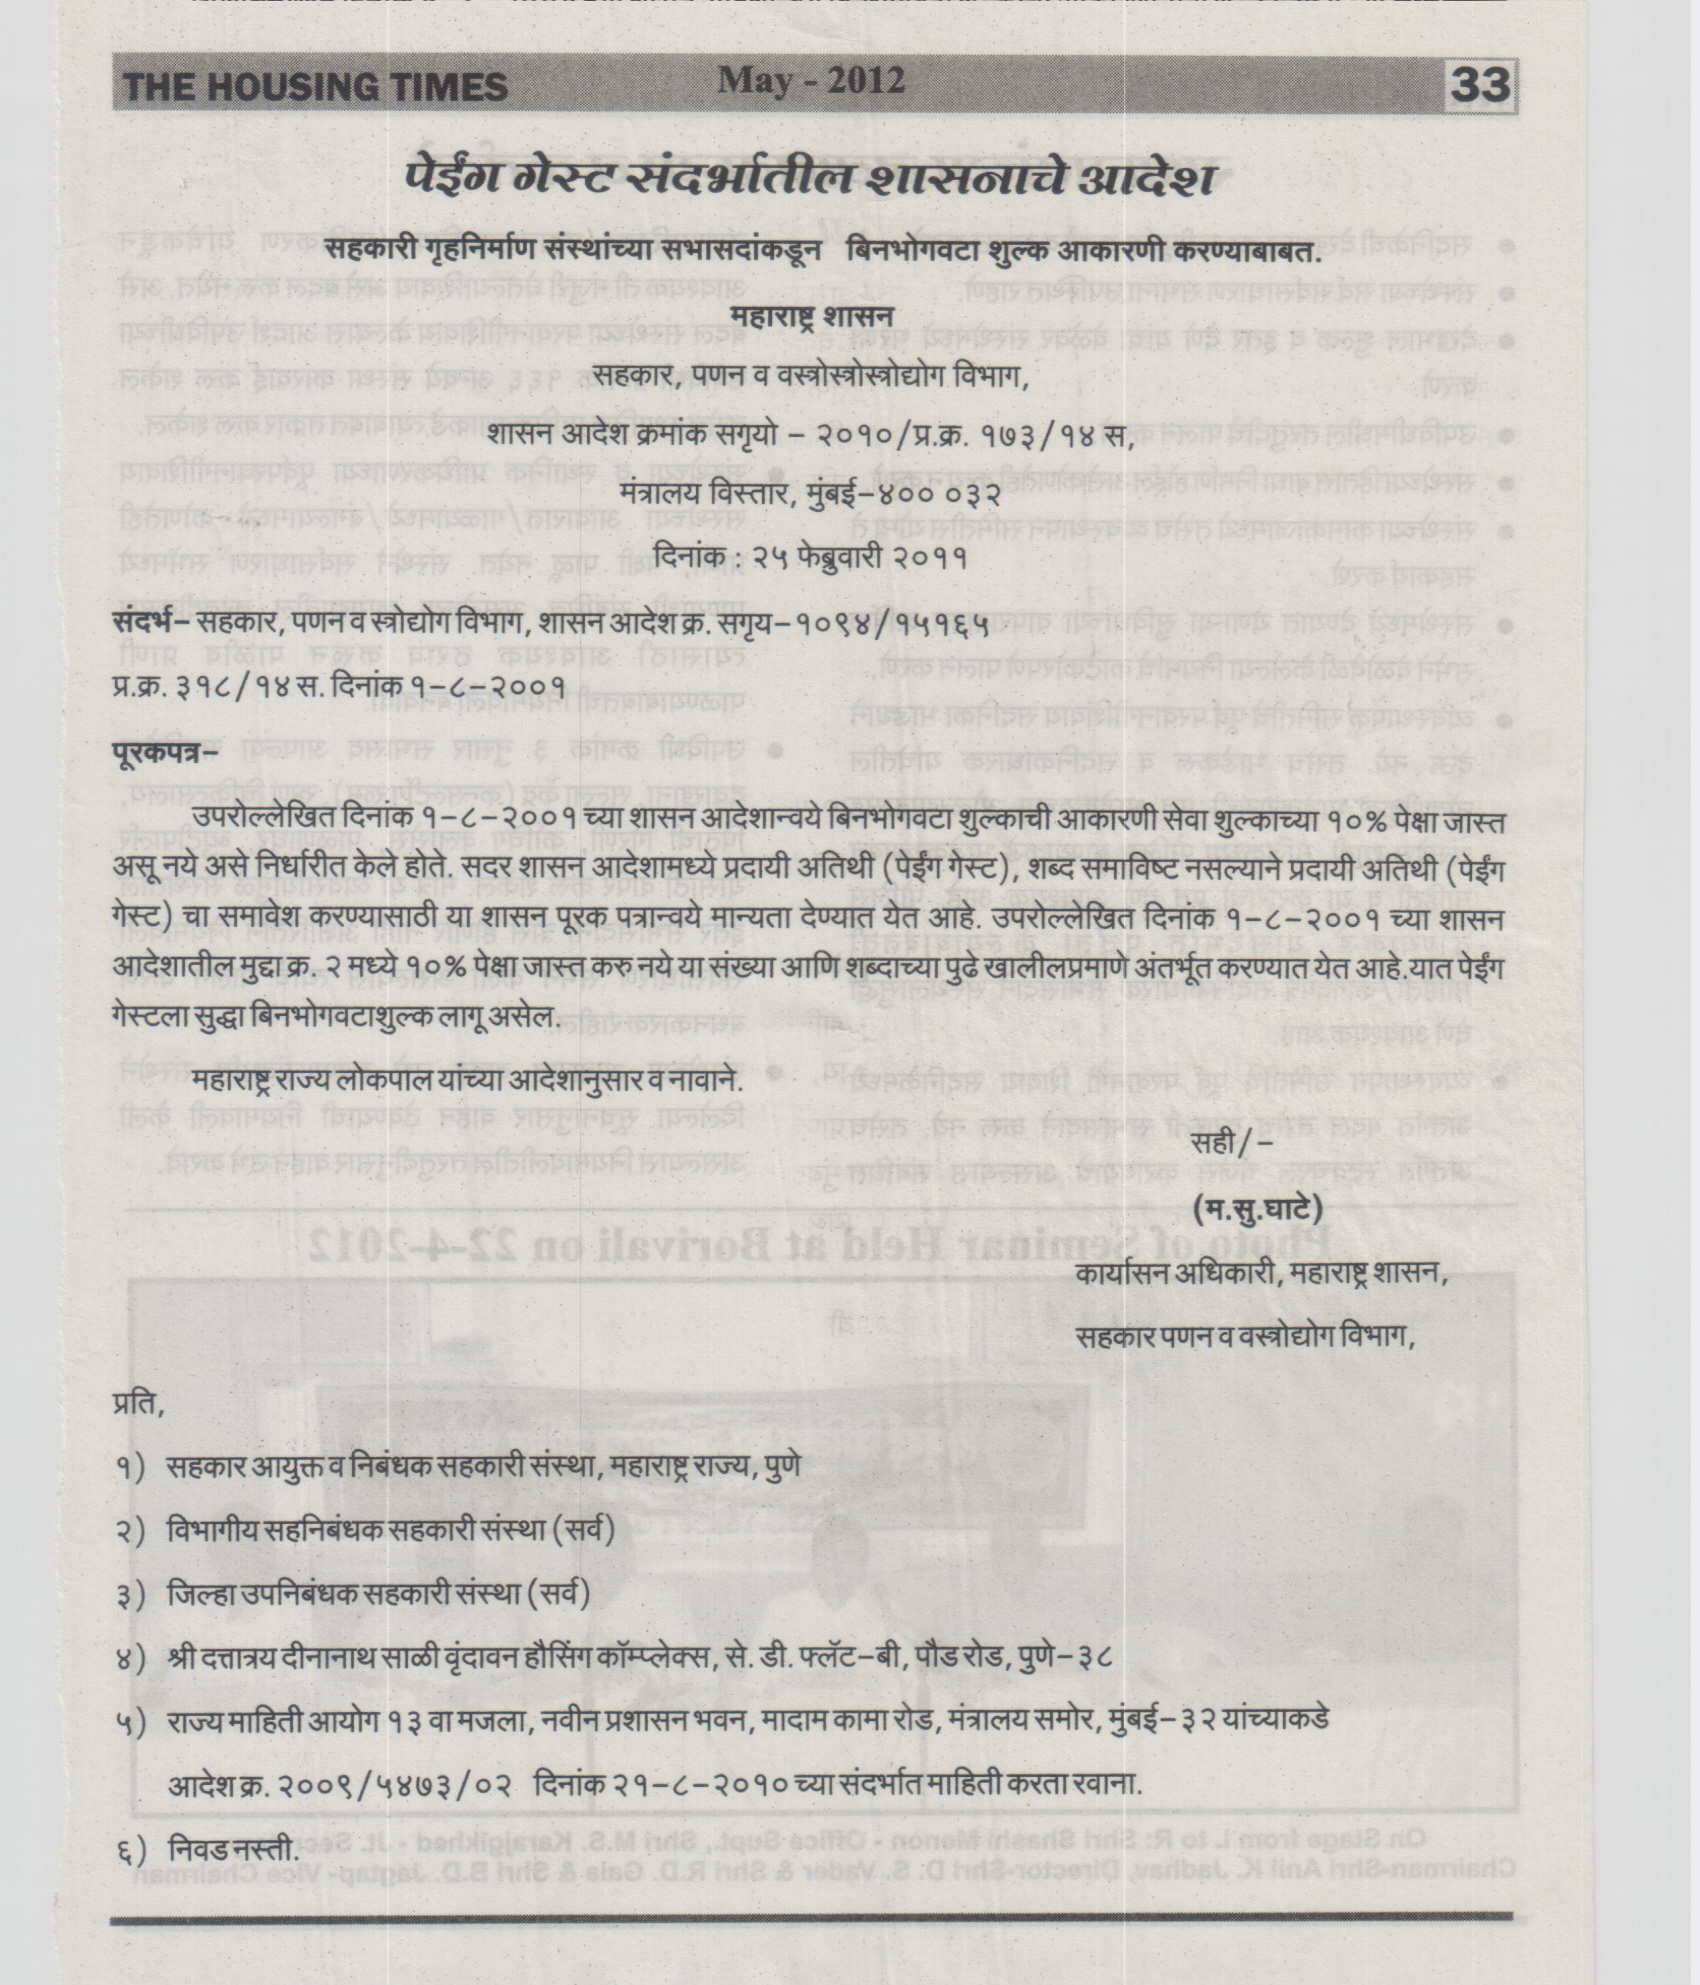 up police regulation act 1861 in hindi pdf